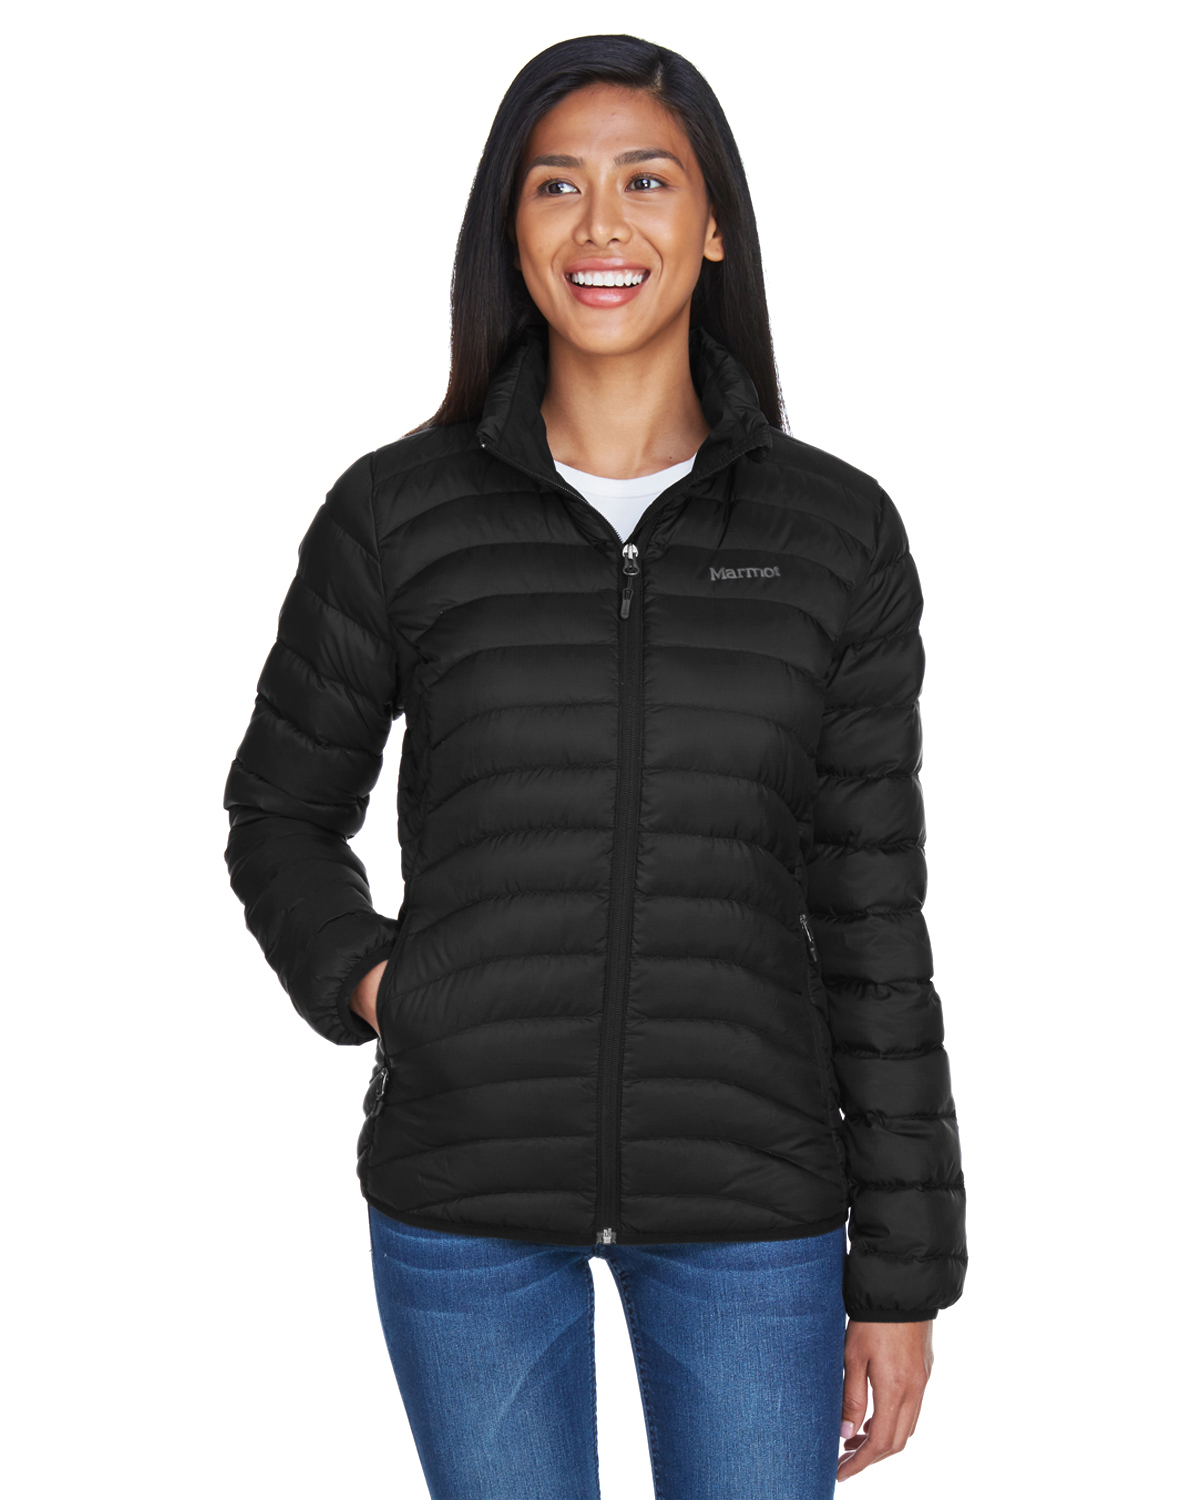 Marmot Women's Aruna Insulated Puffer Jacket